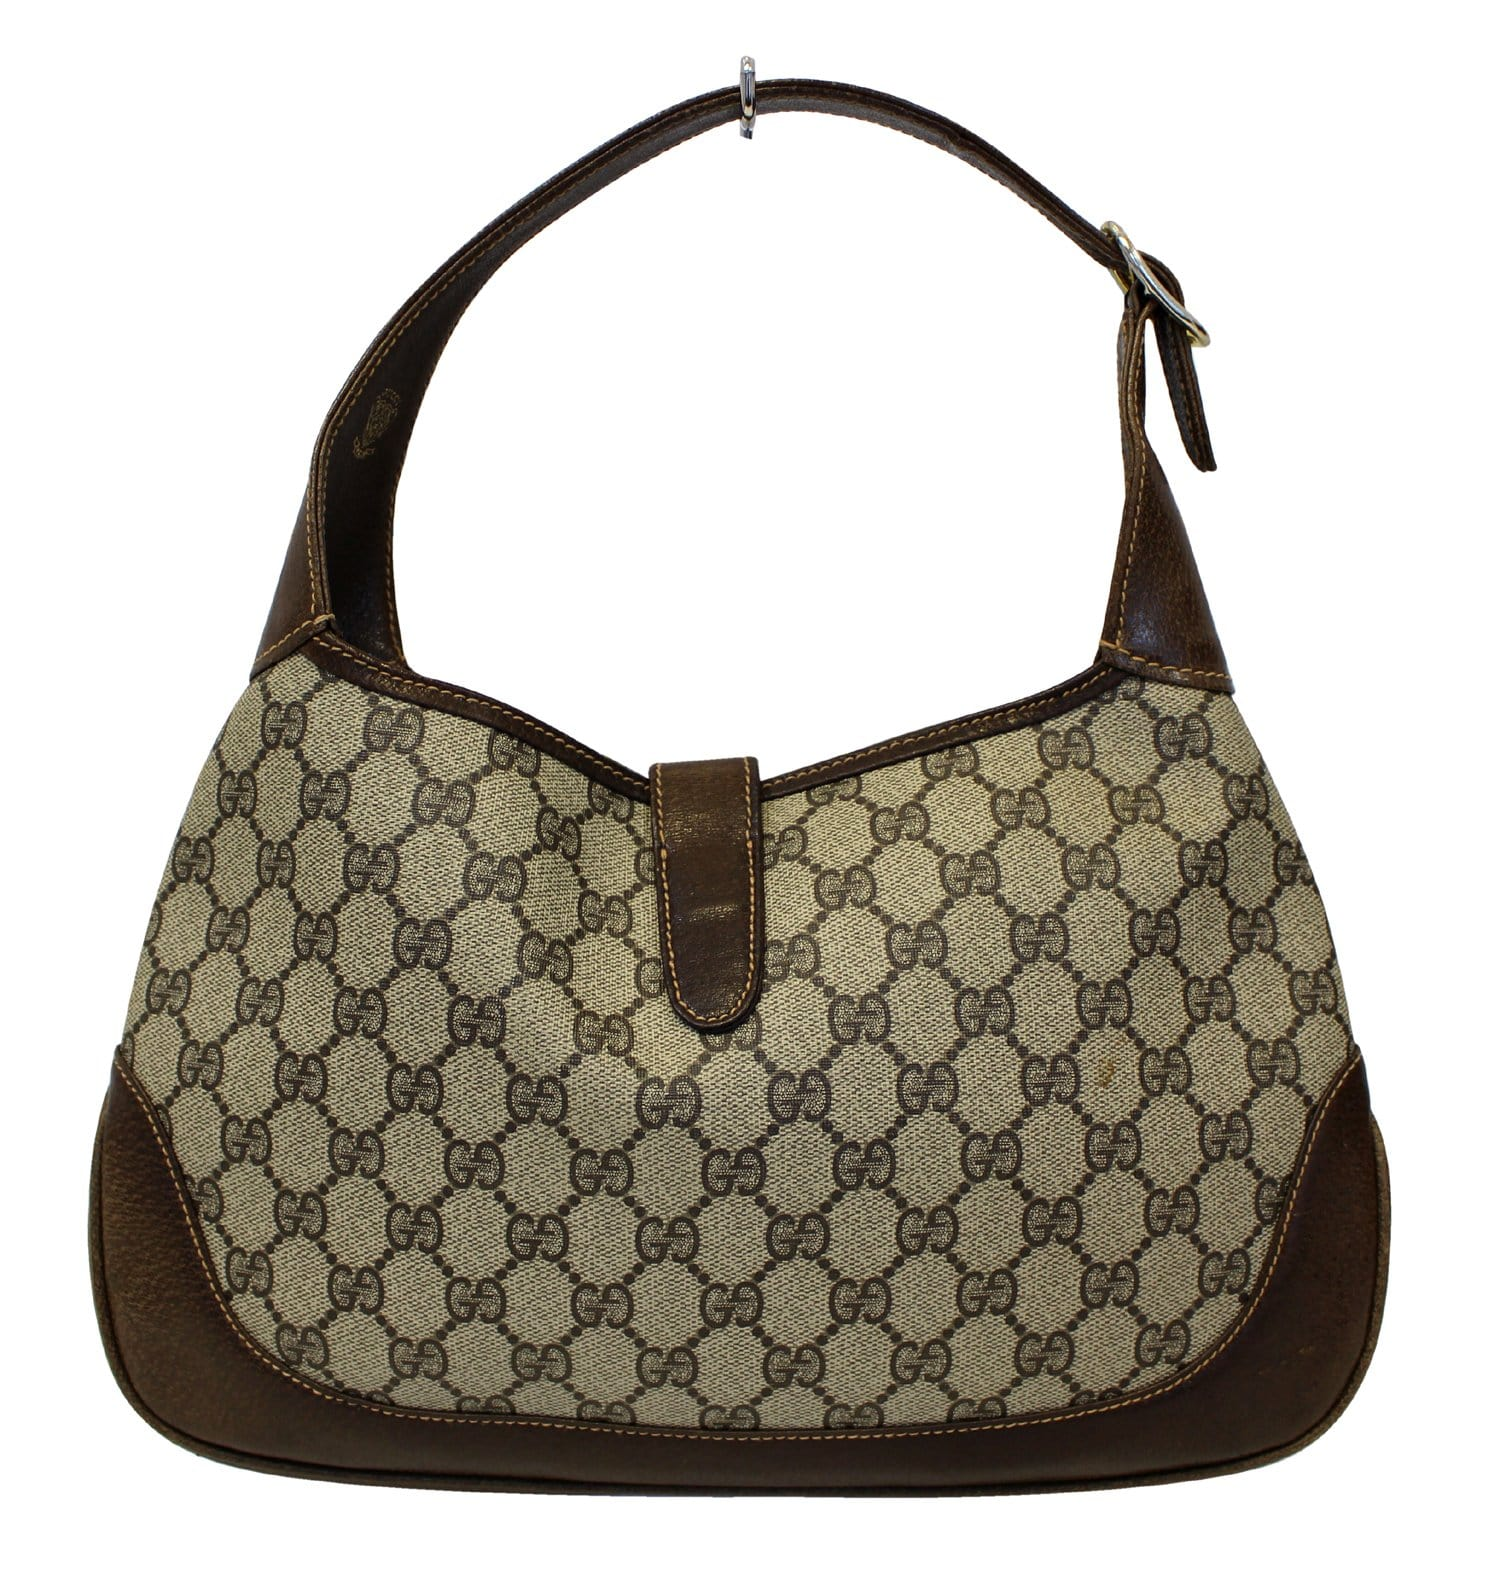 b6f17df3b4f GUCCI Monogram GG Canvas Jackie O Hobo